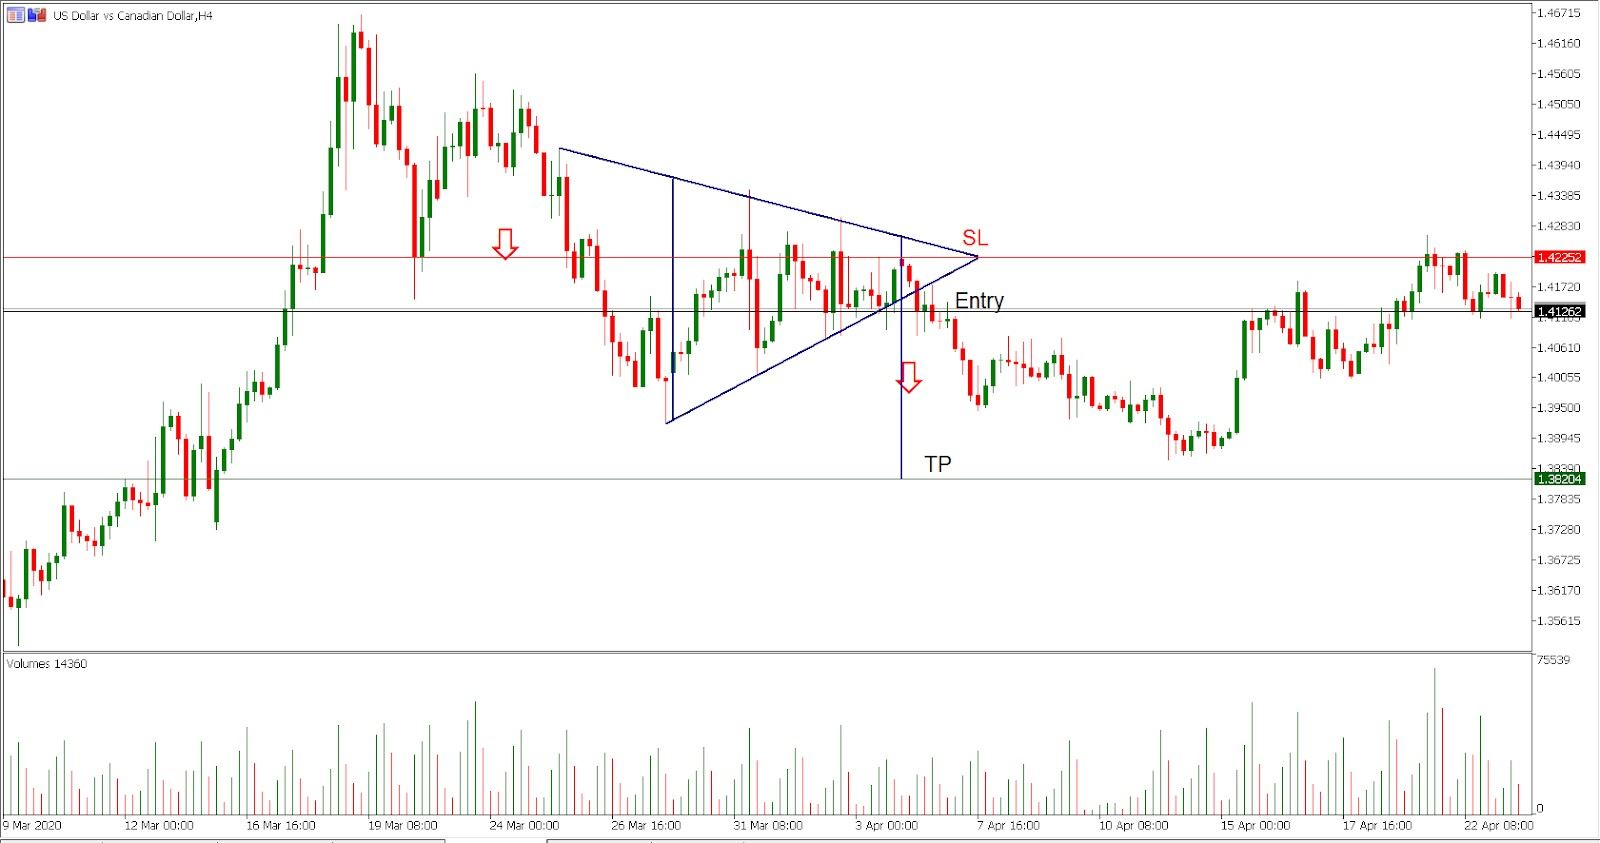 USD/CAD H4 chart - Trading the pattern